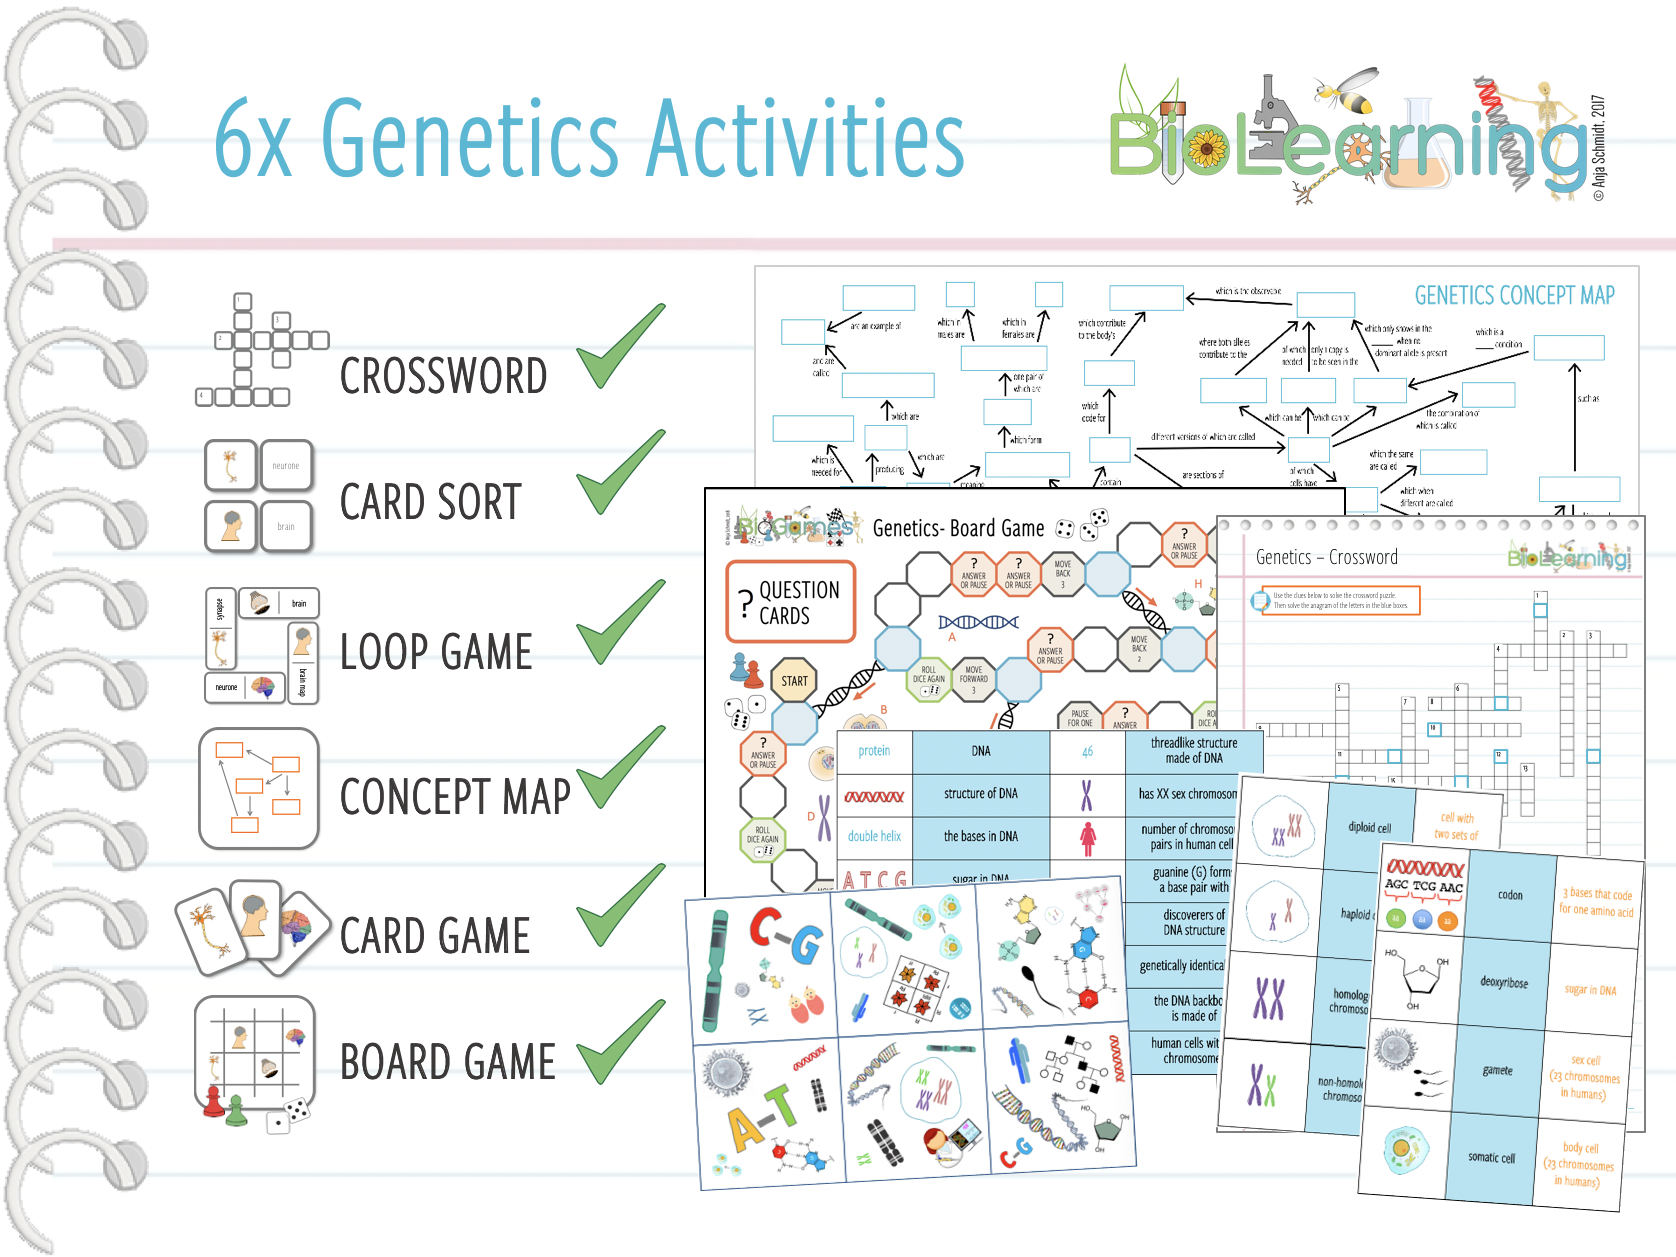 Genetics  - 6x Activities (Concept map, Loop game,  Card sort, Crossword, Card game, Board Game)